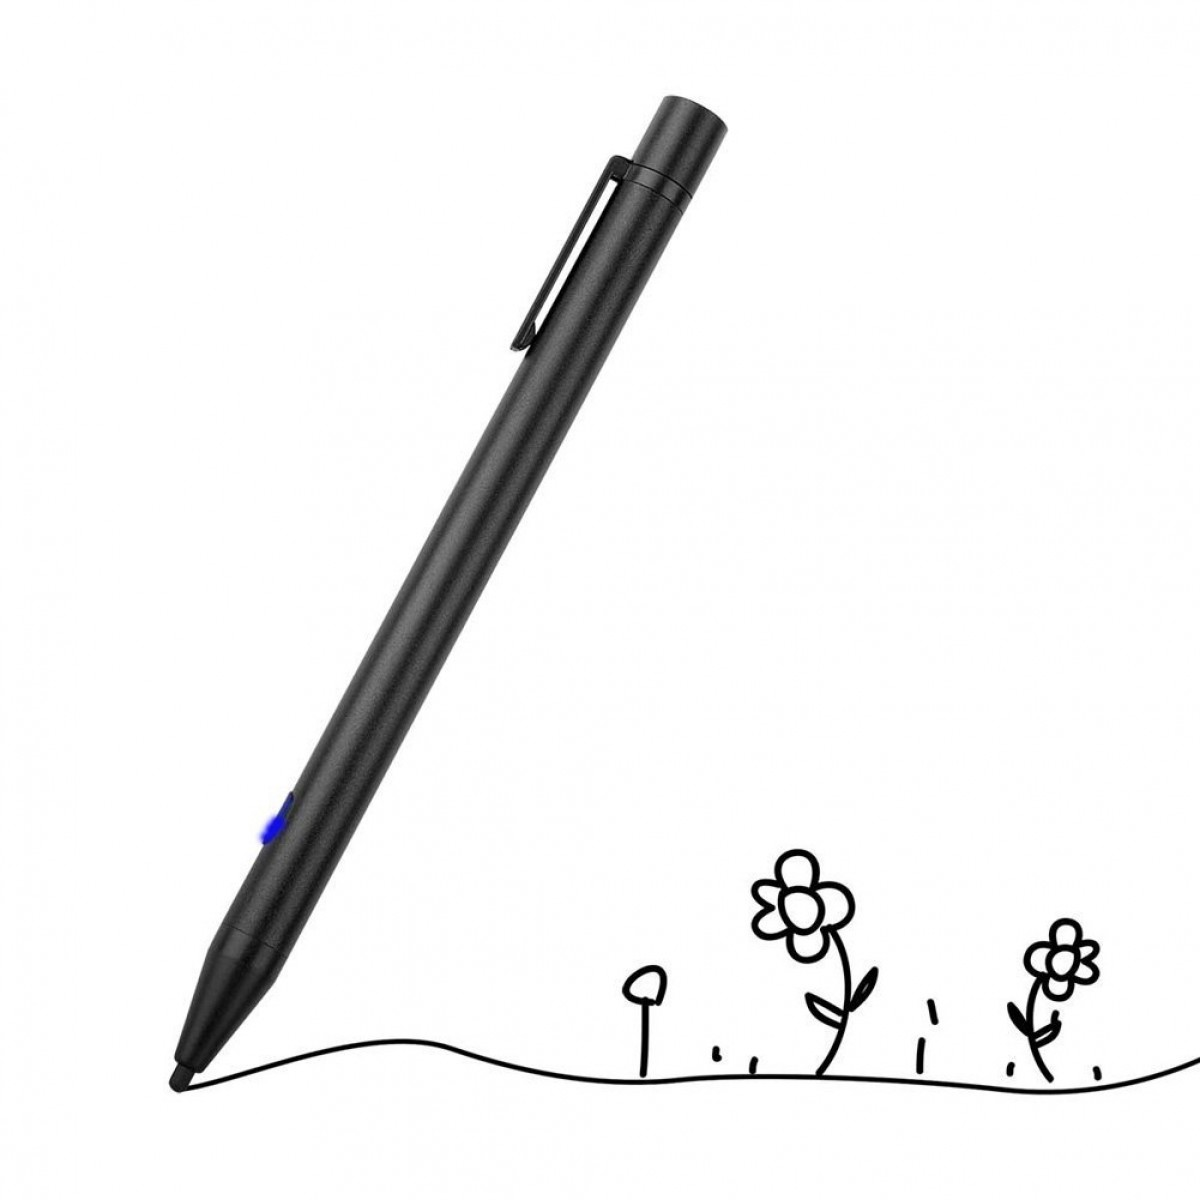 1200x1200 Salute Stylus Pen Active Touch Screen Capacitive Drawing Pen Usb